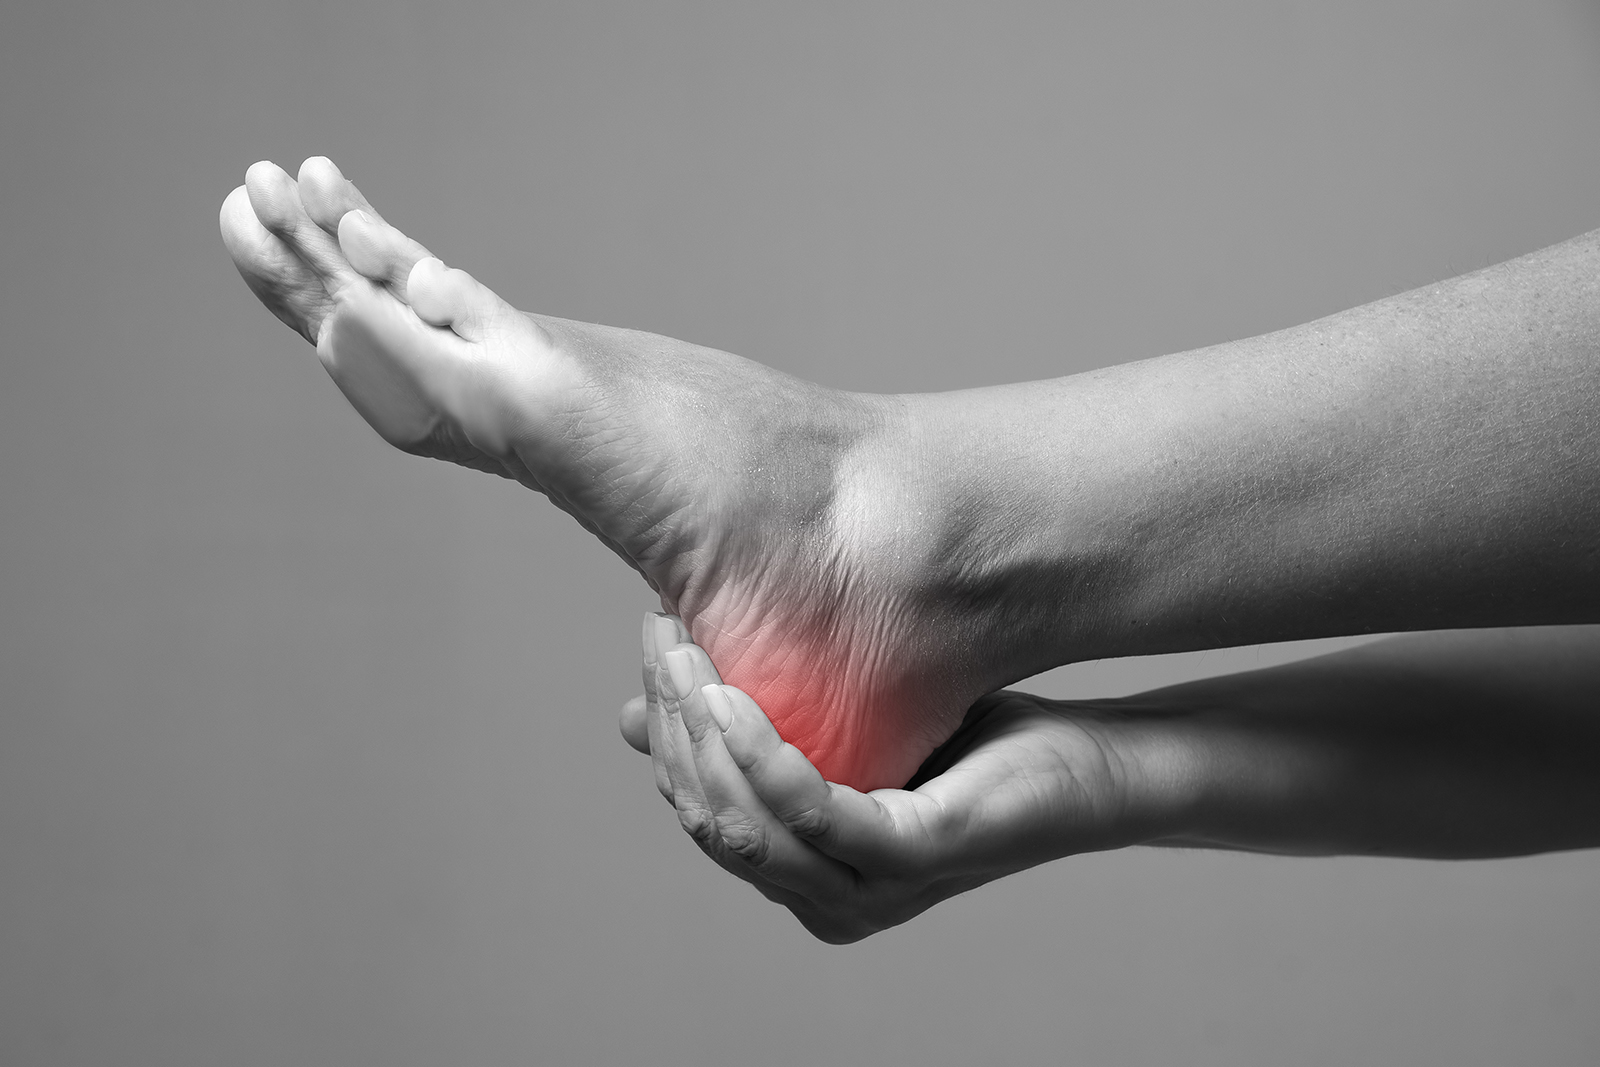 black and white image of a woman holding her heel, which is glowing red from pain